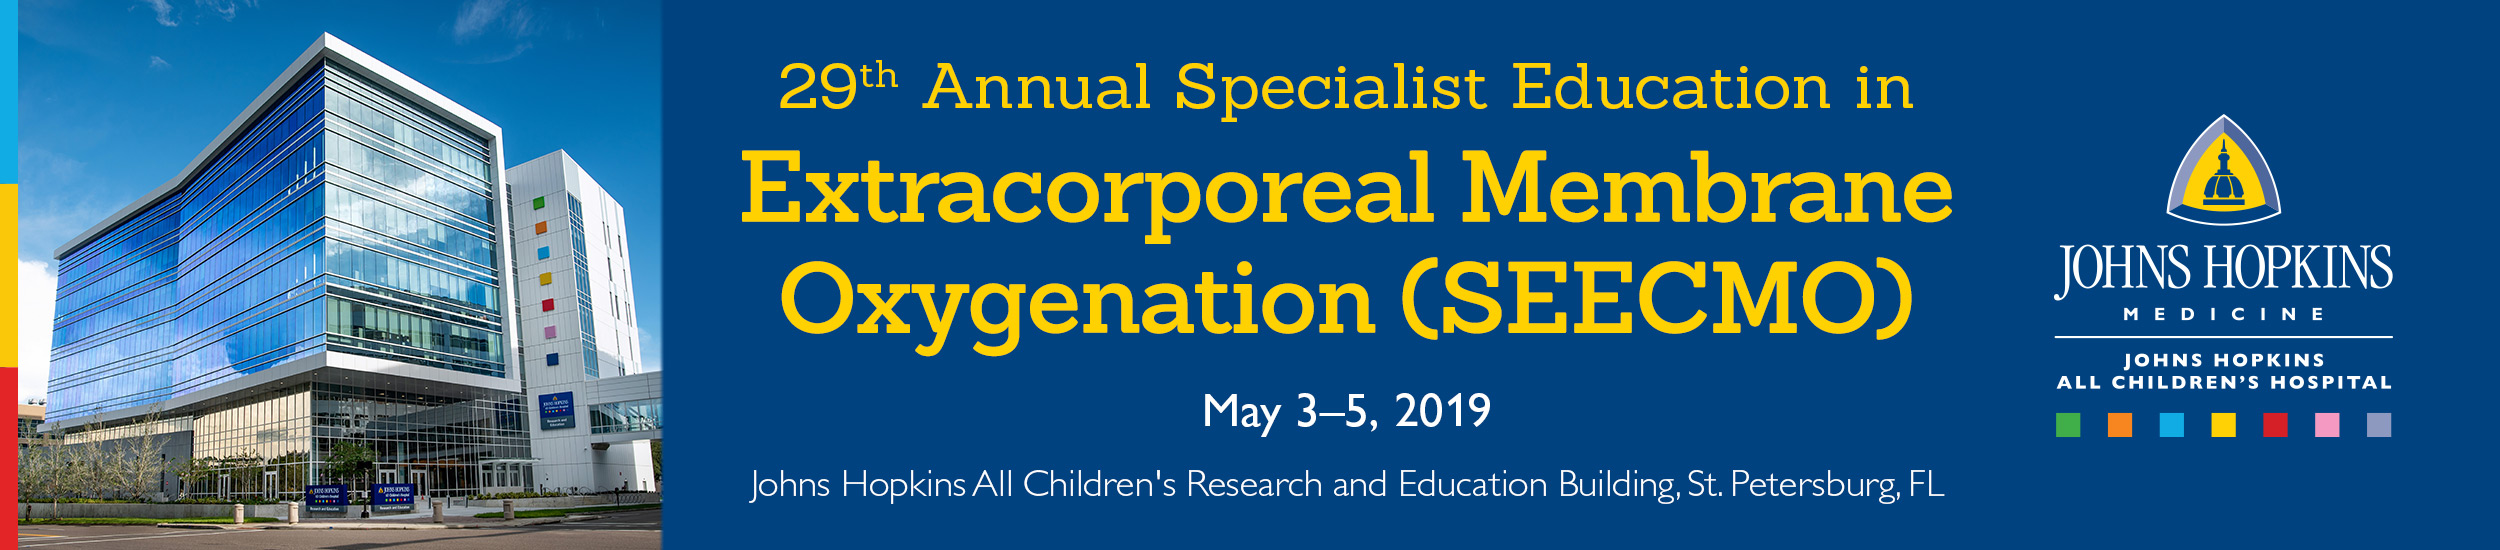 29th Annual Specialist Education in Extracorporeal Membrane Oxygenation